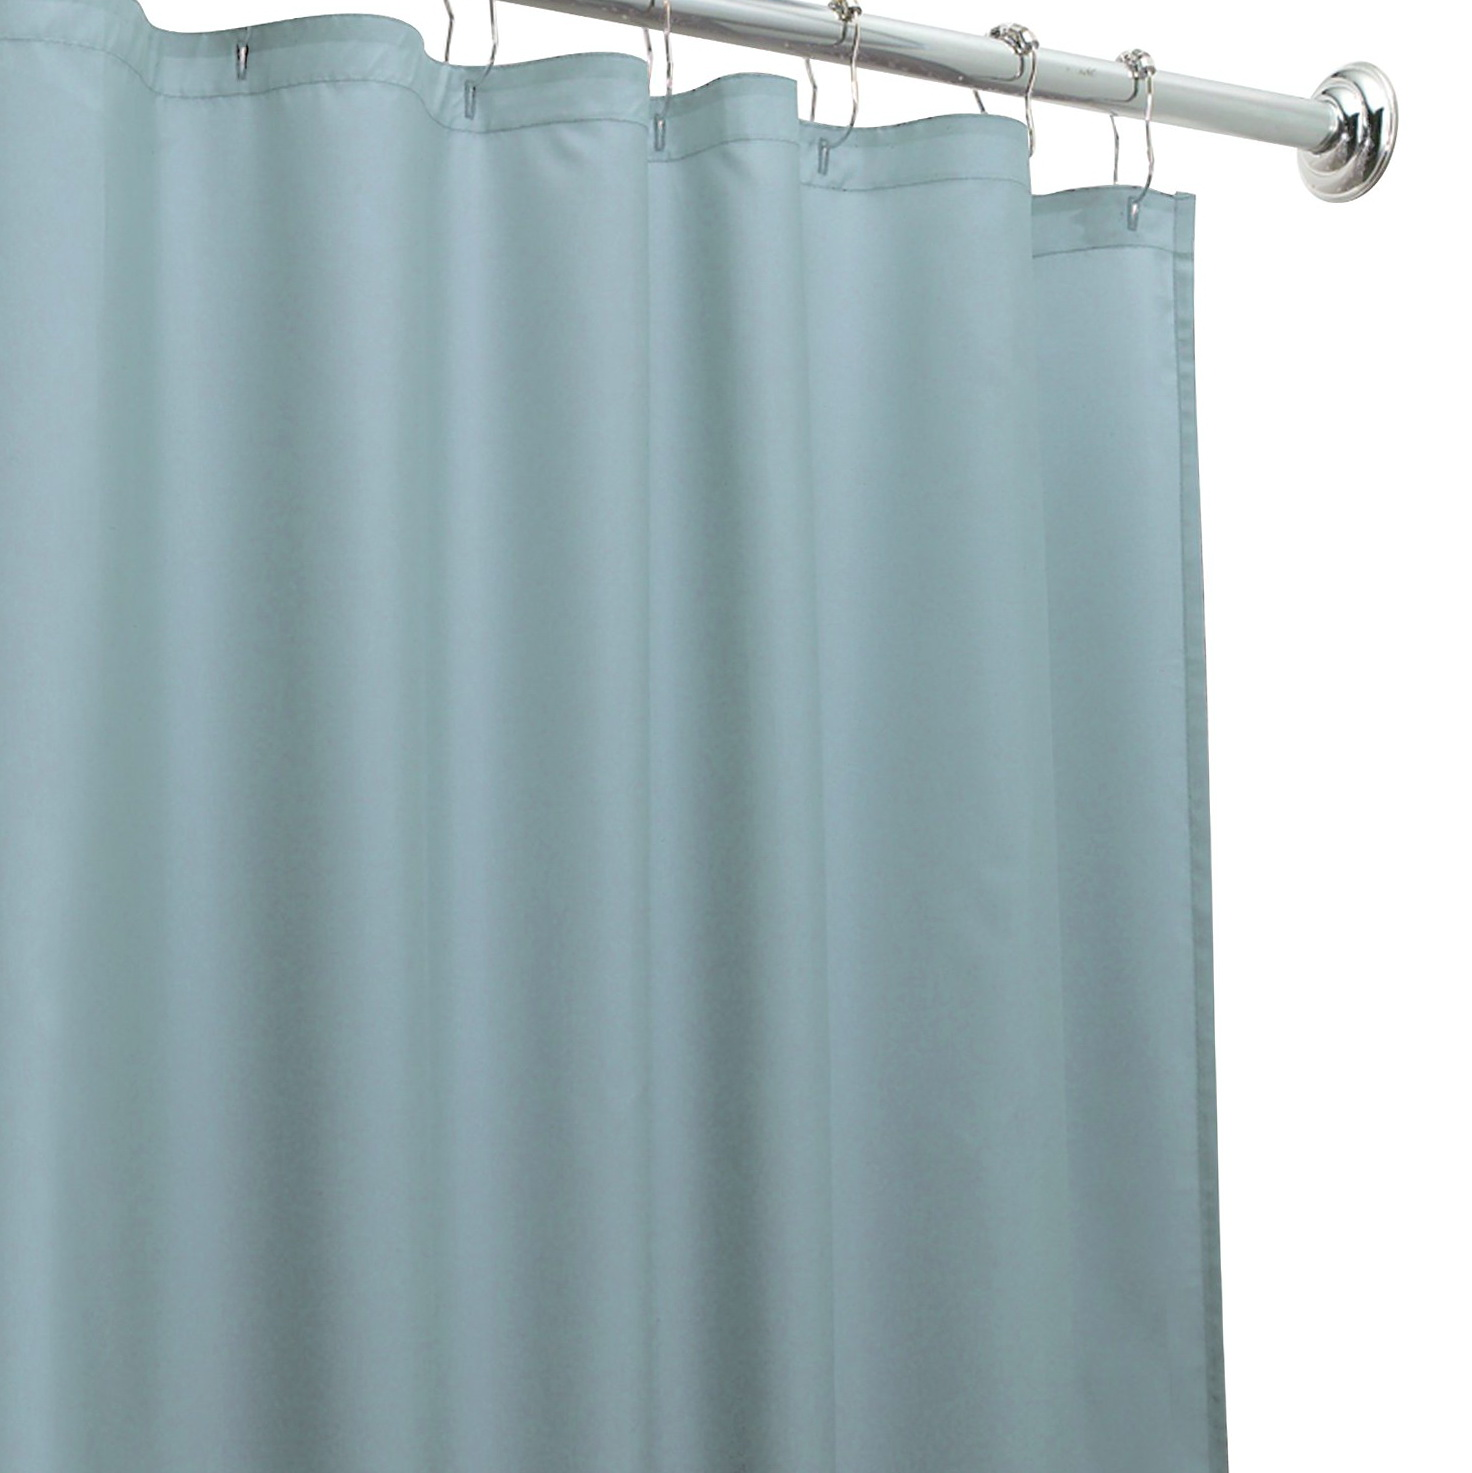 Shower Curtain Liners With Pockets